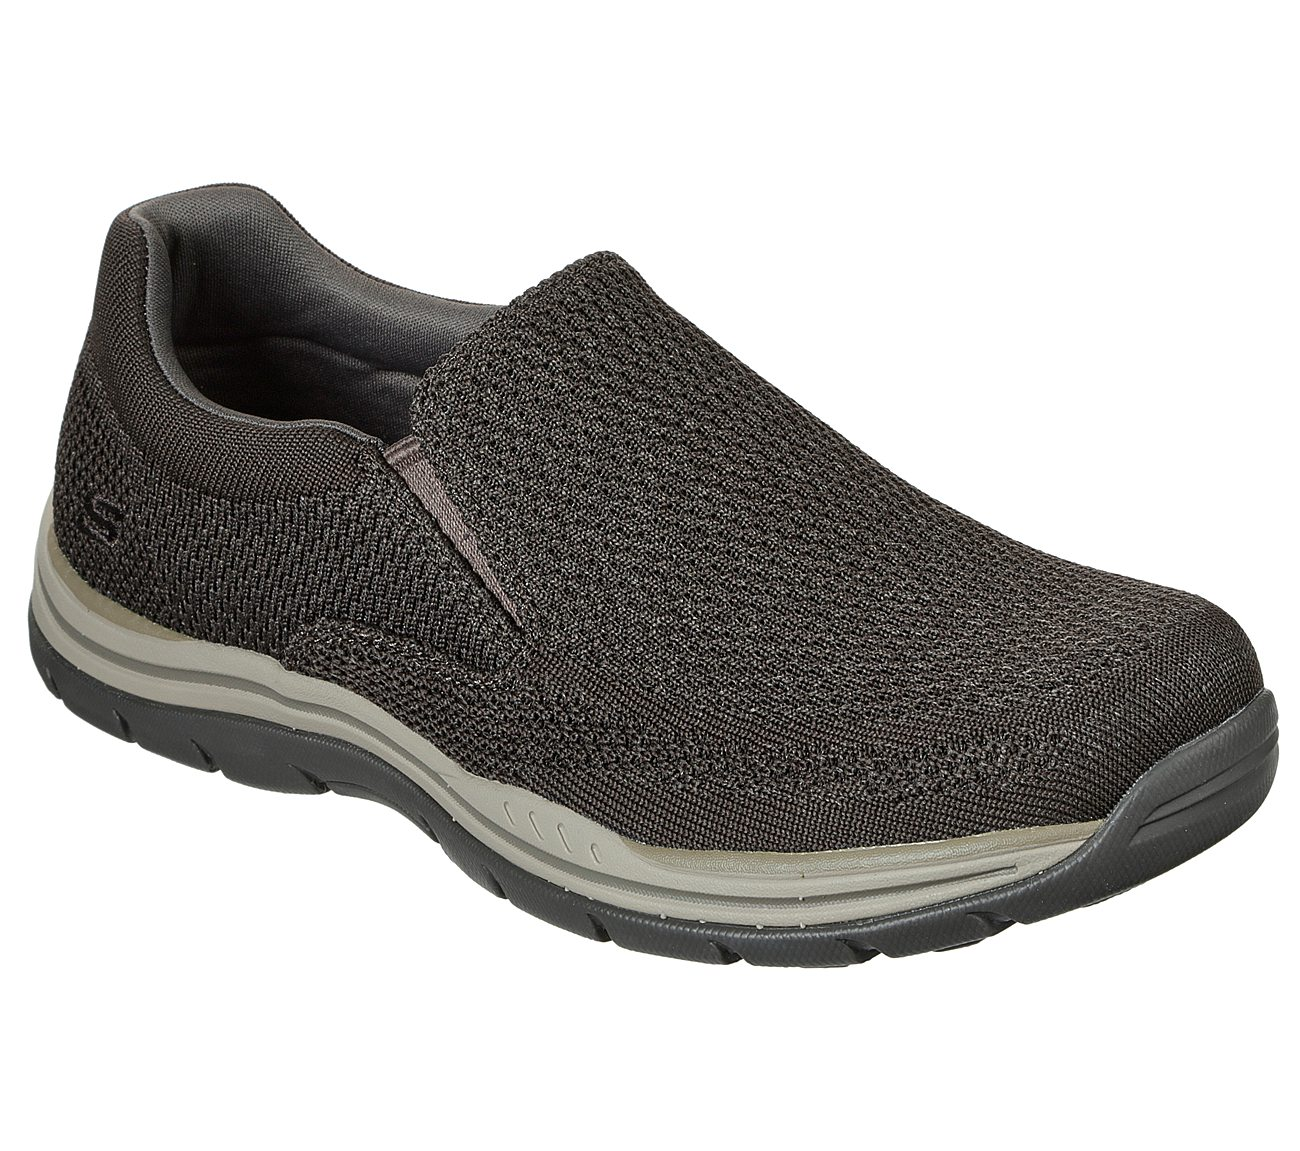 58ba96a25f3 Buy SKECHERS Relaxed Fit  Expected - Gomel Relaxed Fit Shoes only  75.00